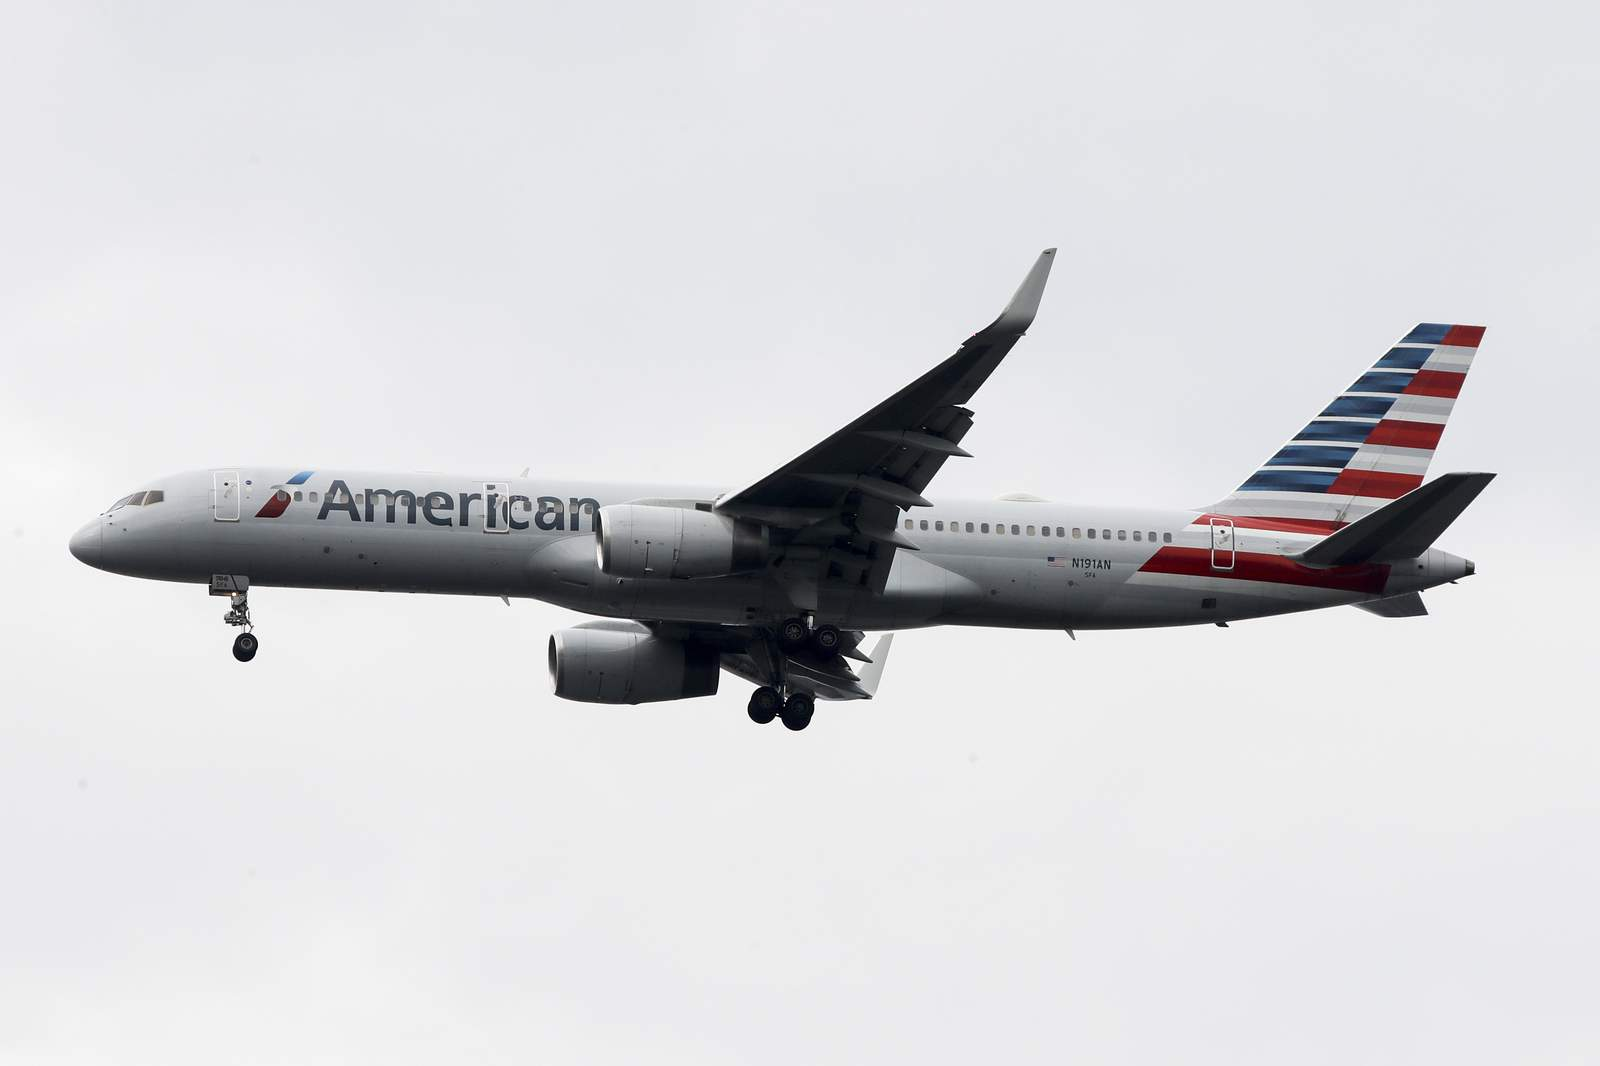 AmericanAirlines pilot tests positive for COVID-19